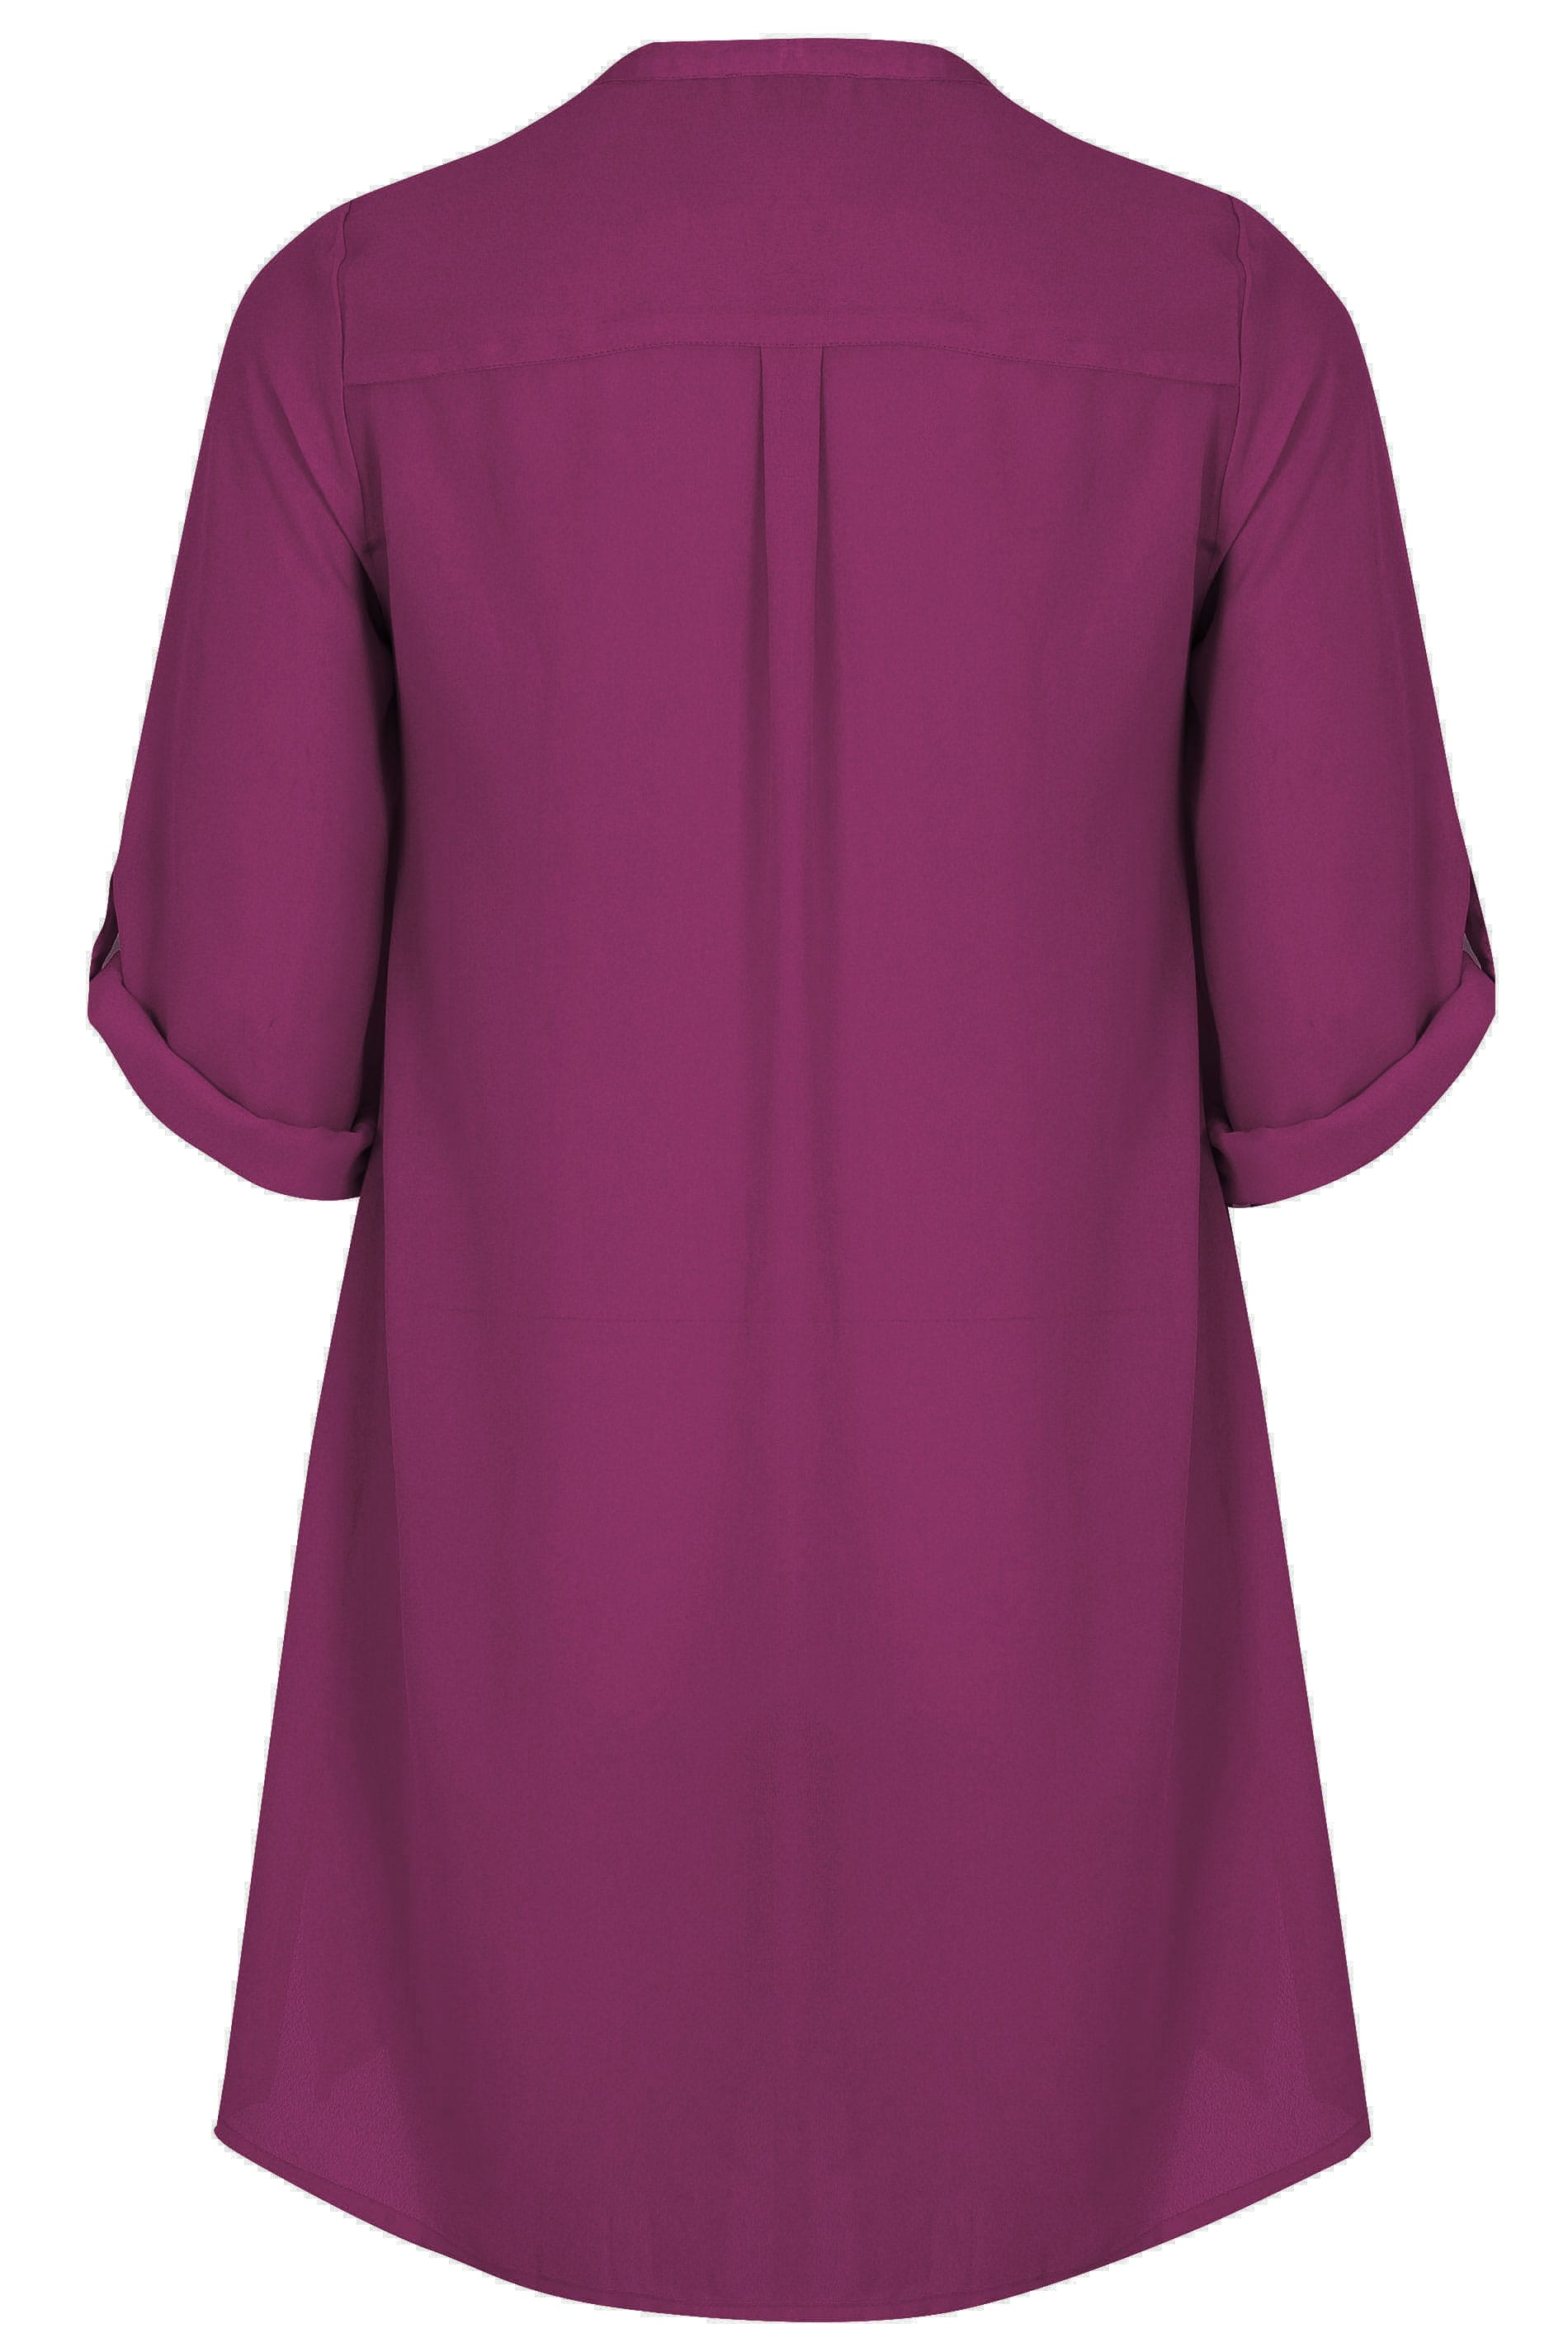 how to fill out a letter yours purple chiffon blouse with satin trim plus 22295 | YOURS LONDON Purple Chiffon Blouse With Satin Trim 156564 2042